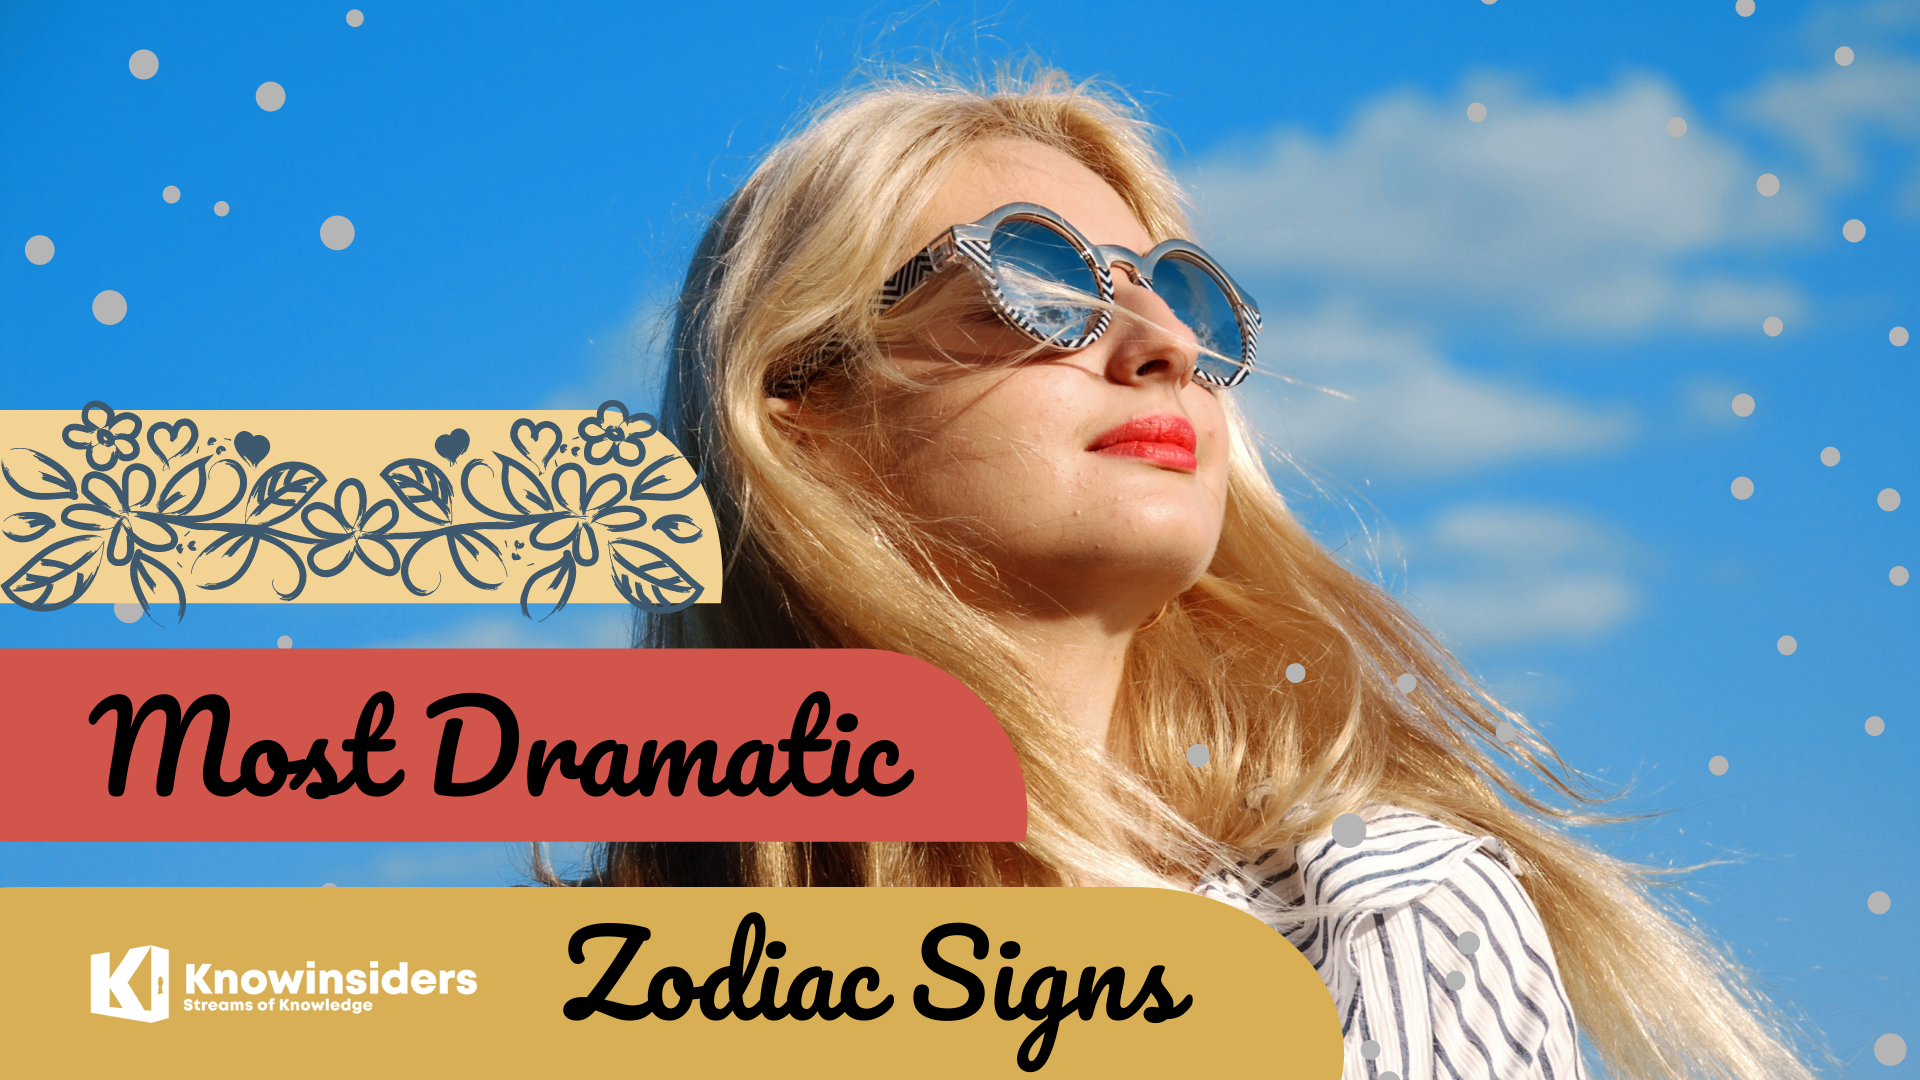 Top 5 Most Dramatic Zodiac Signs According To Astrology